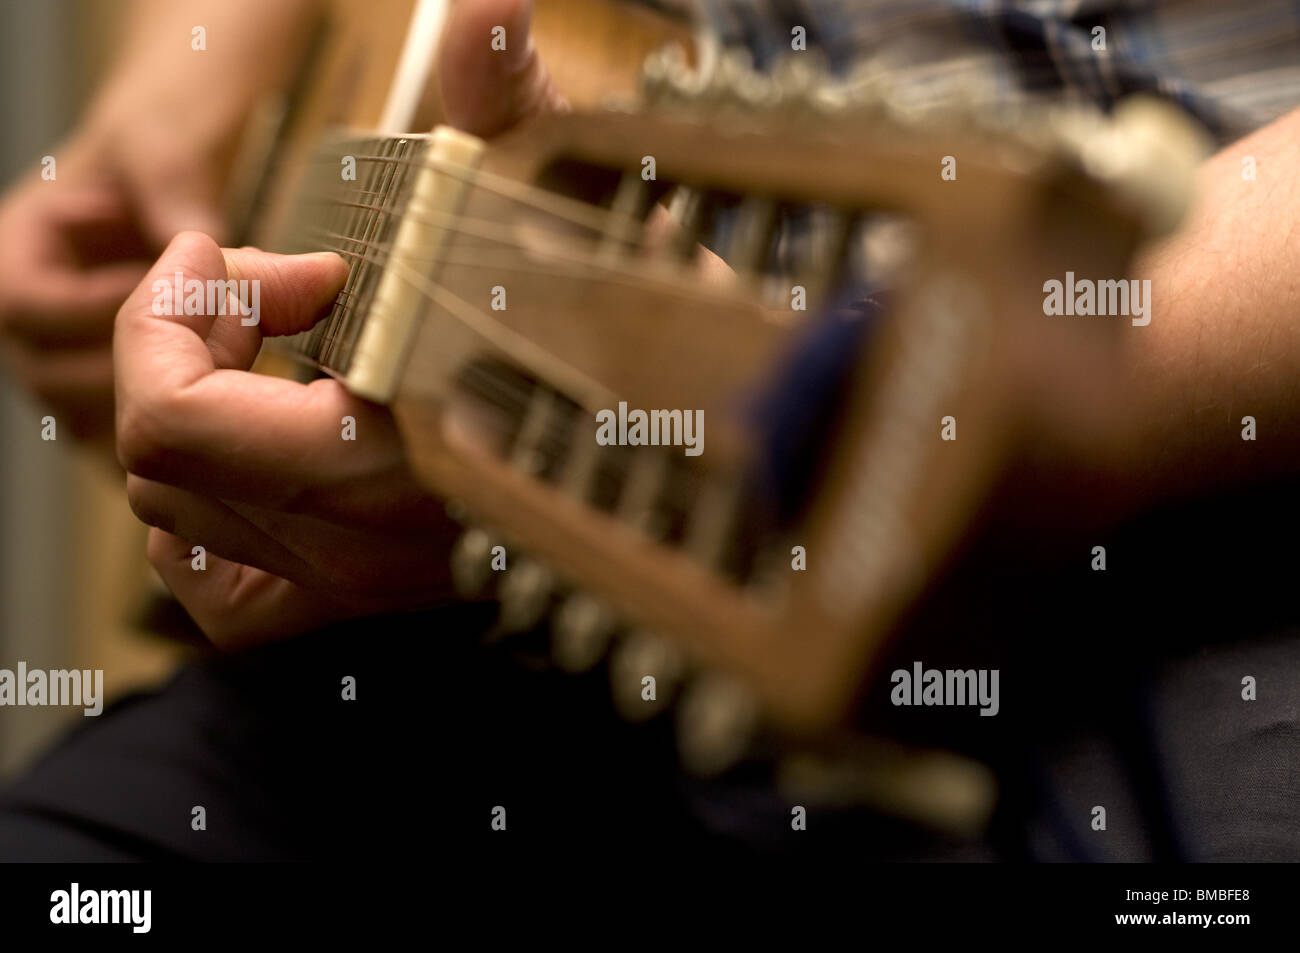 Man Playing a classical guitar. Shows fretboard and crop of hands playing notes. - Stock Image